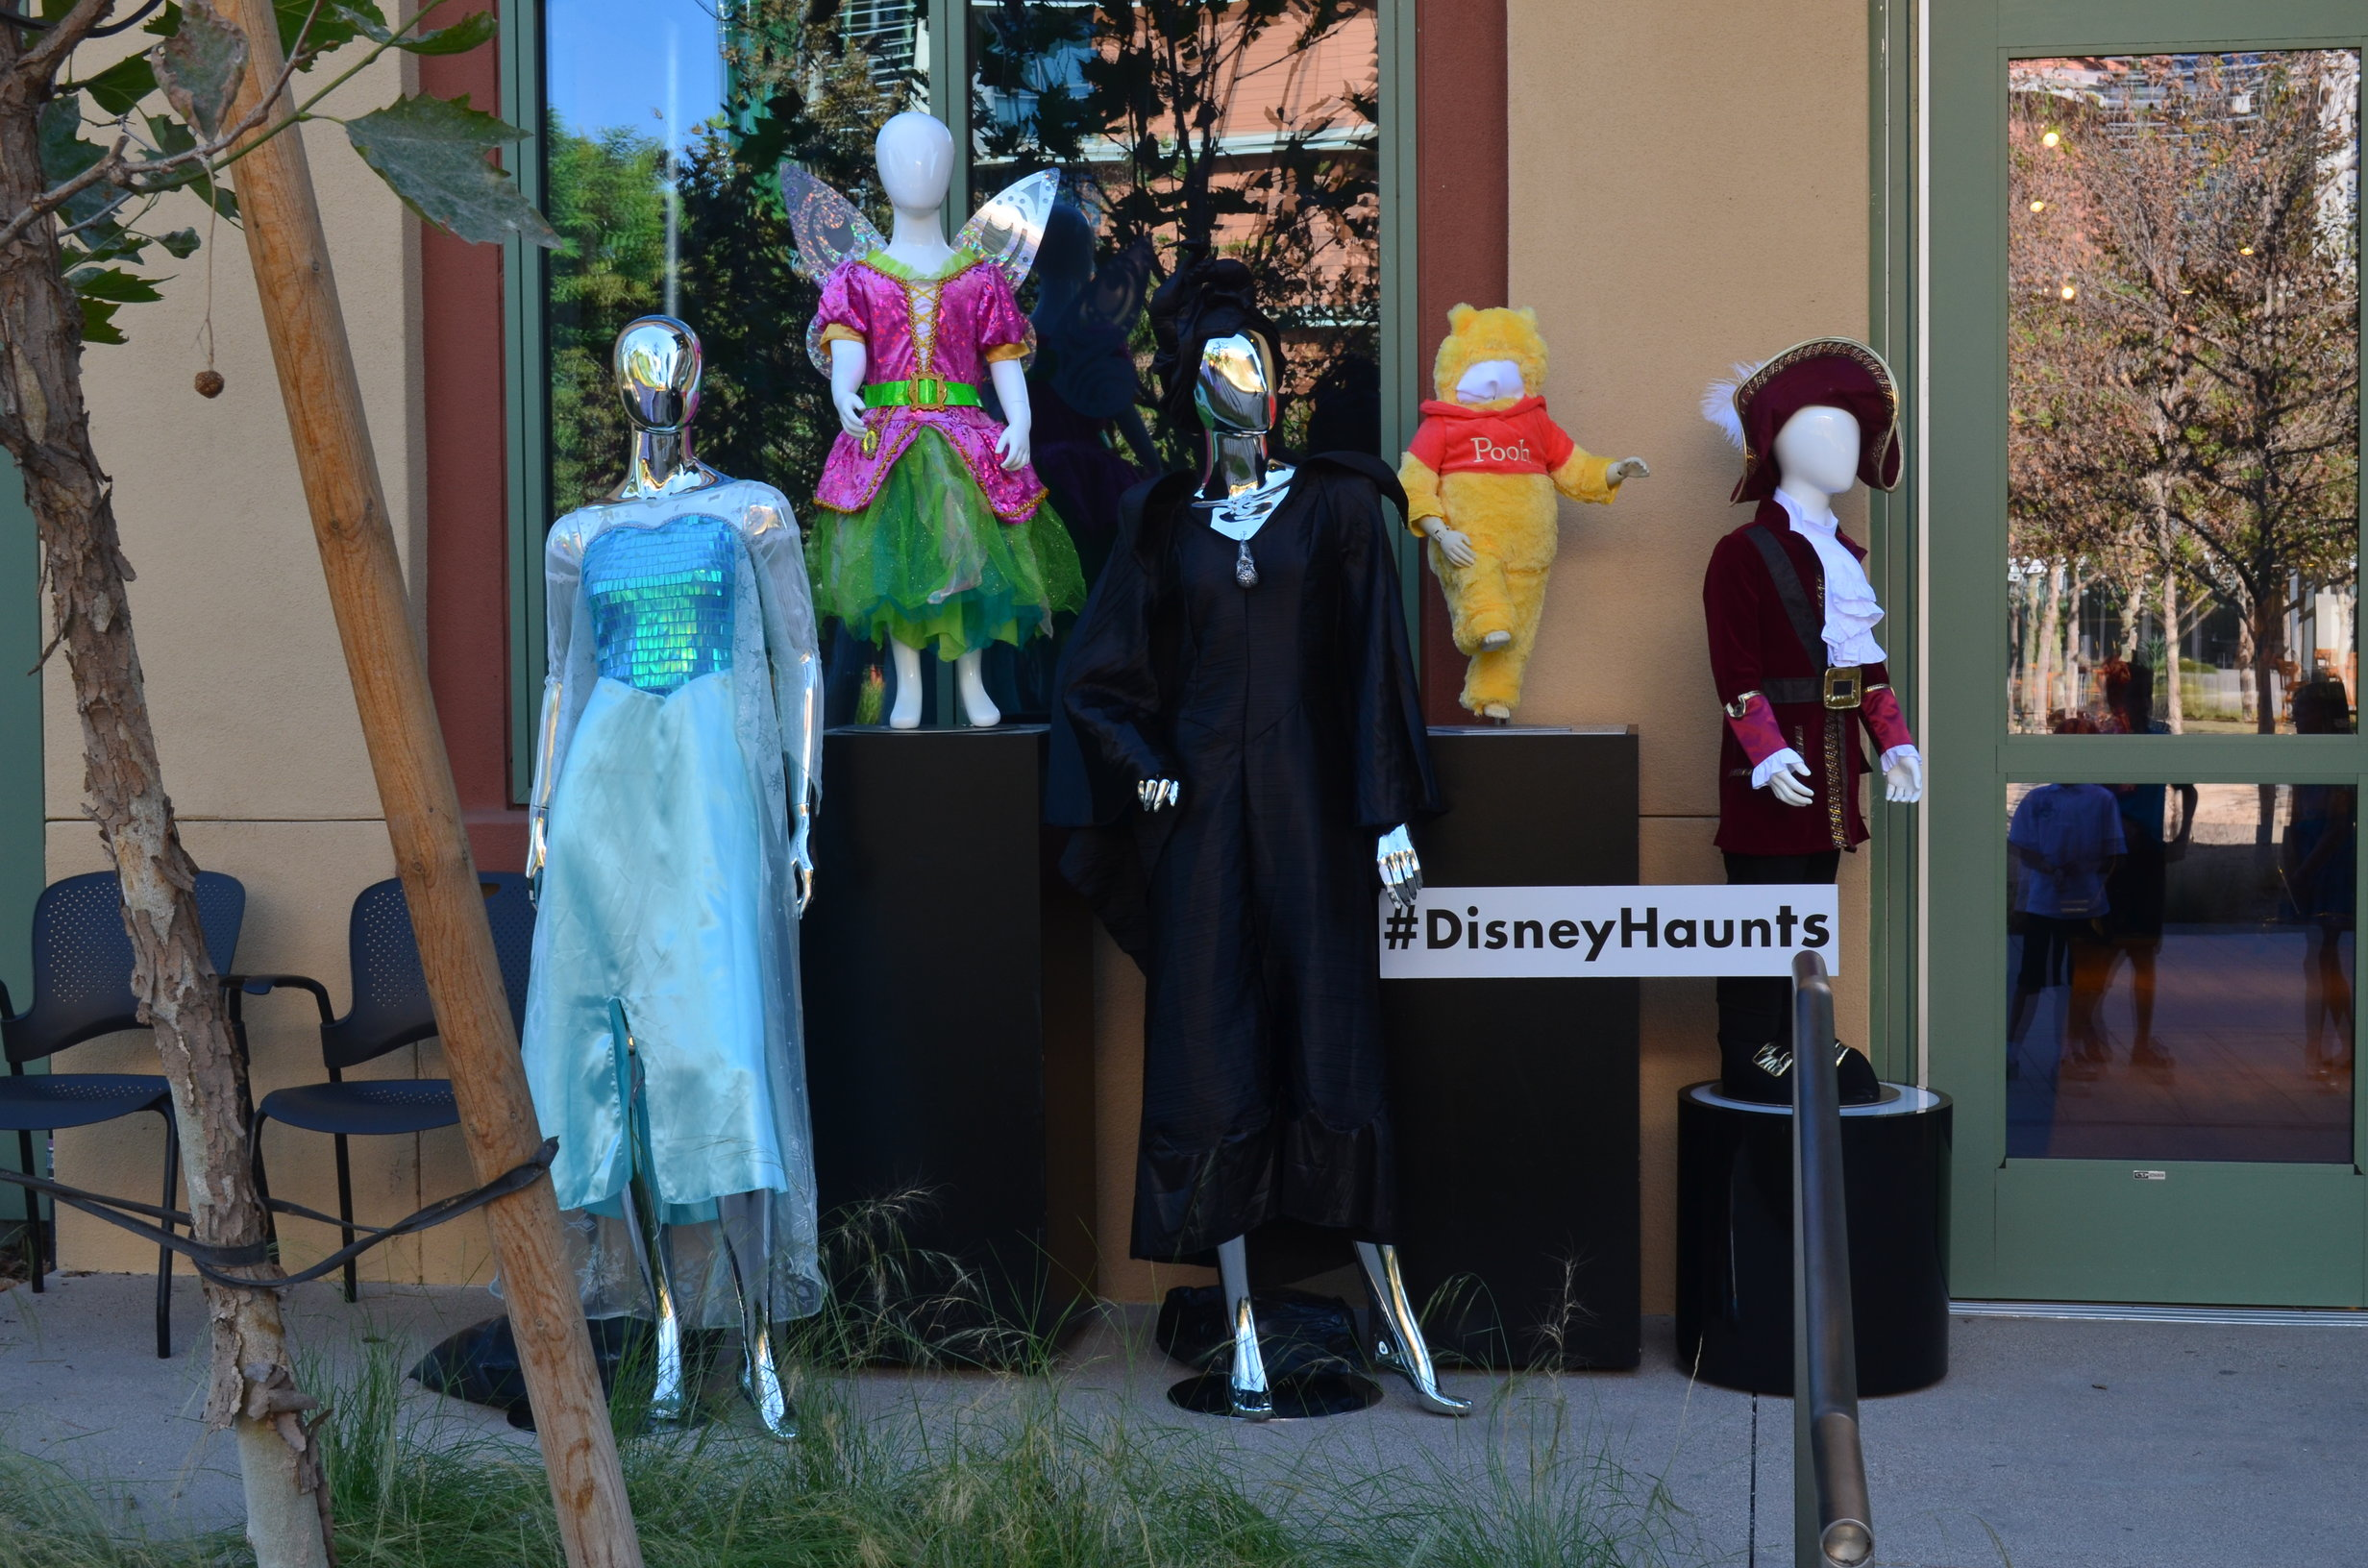 Outside the window display are placed the most popular Disney costumes for Halloween: Winnie the Pooh or Tinkerbell for example.